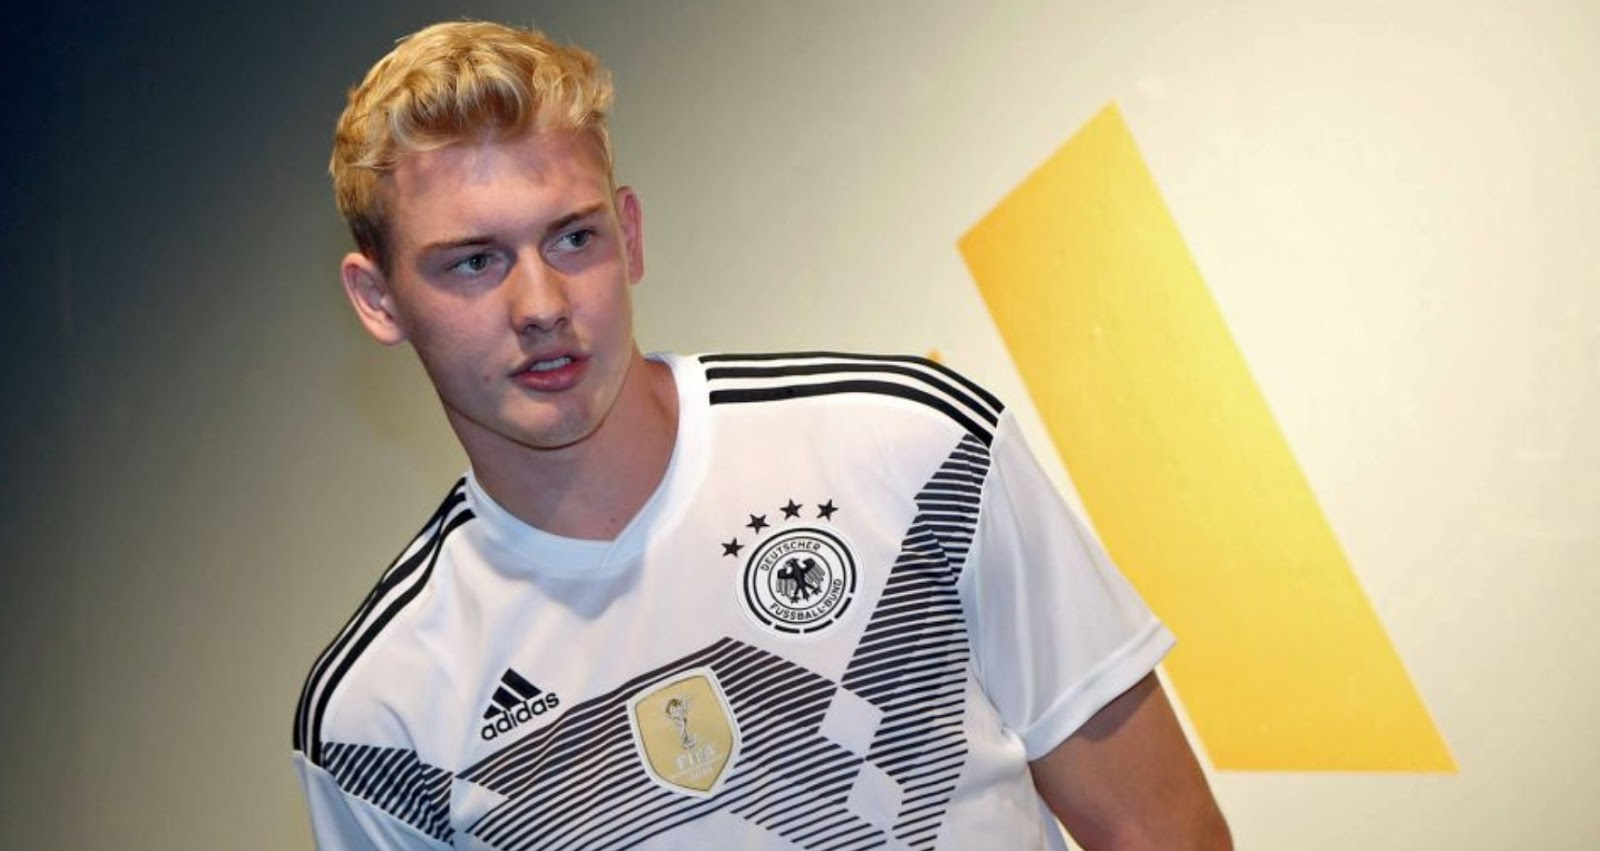 Adidas revealed the kit of Germany football team 2018